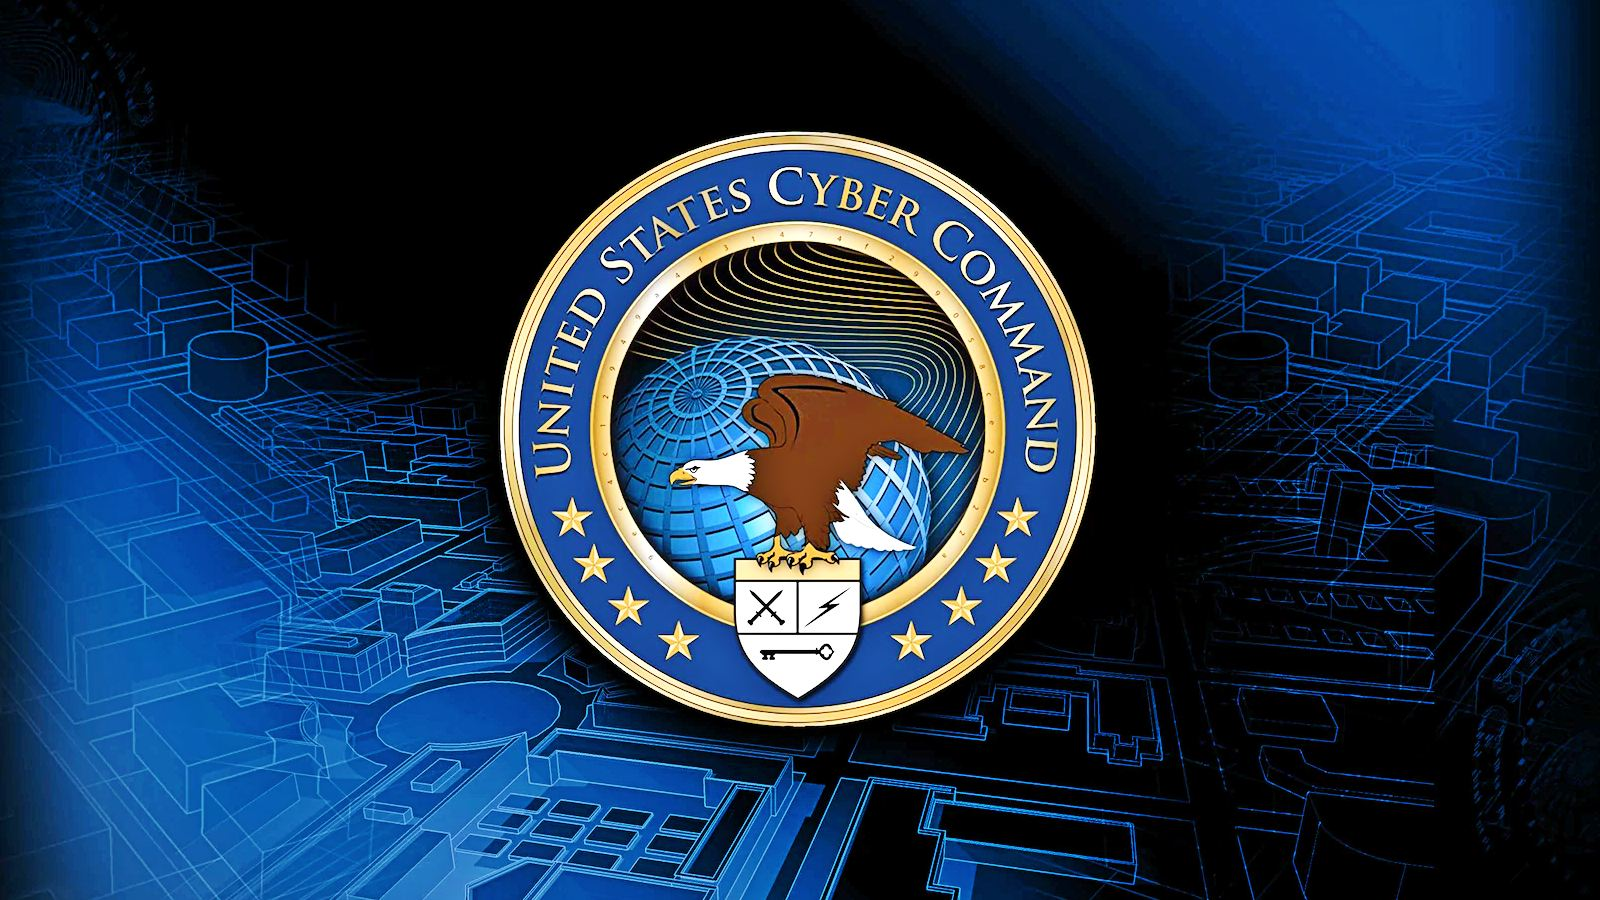 US govt warns orgs to patch massively exploited Confluence bug